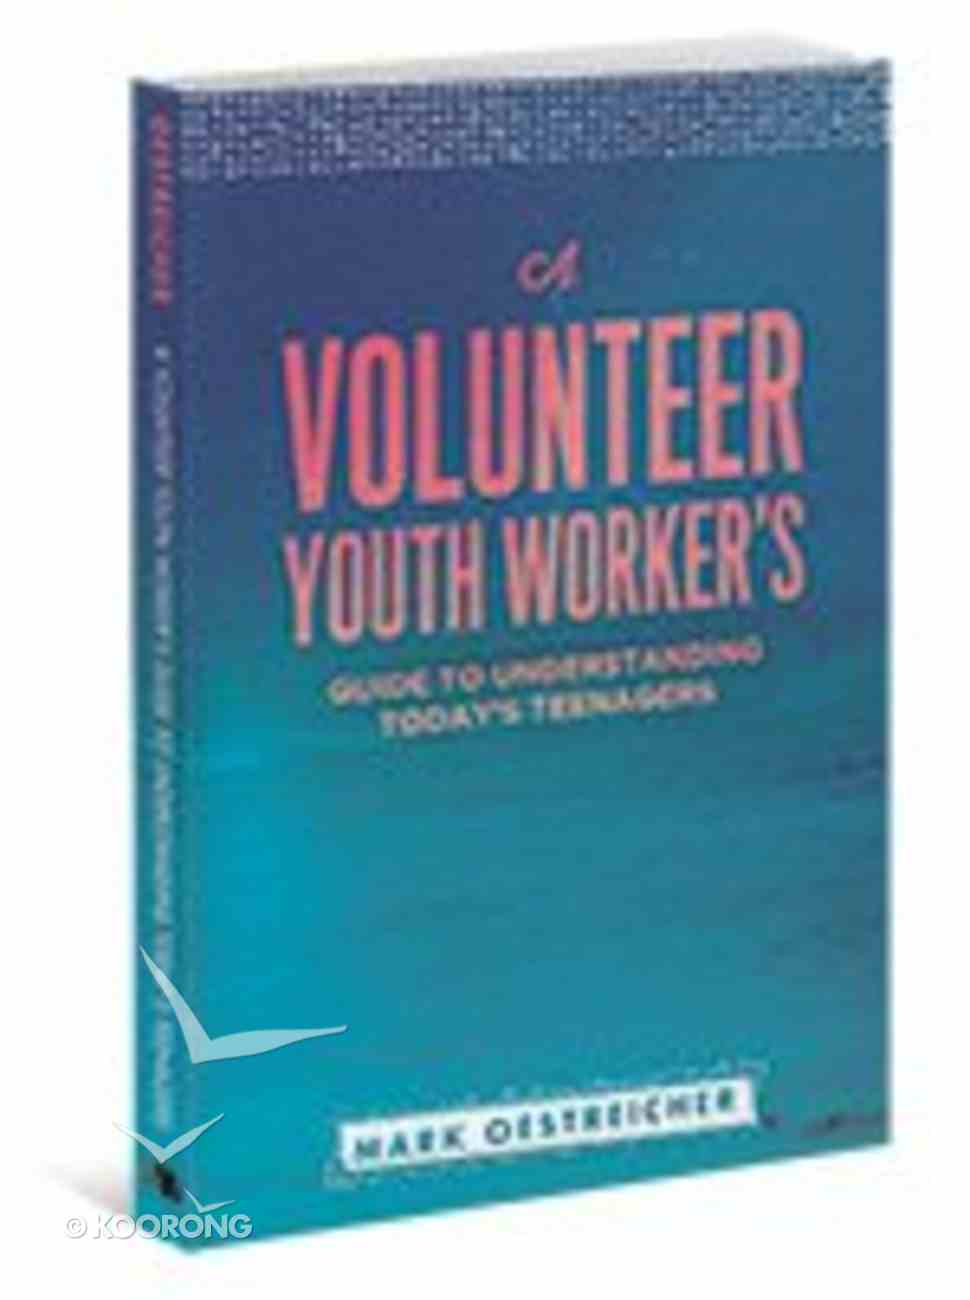 A Volunteer Youth Worker's Guide to Understanding Today's Teenagers Paperback